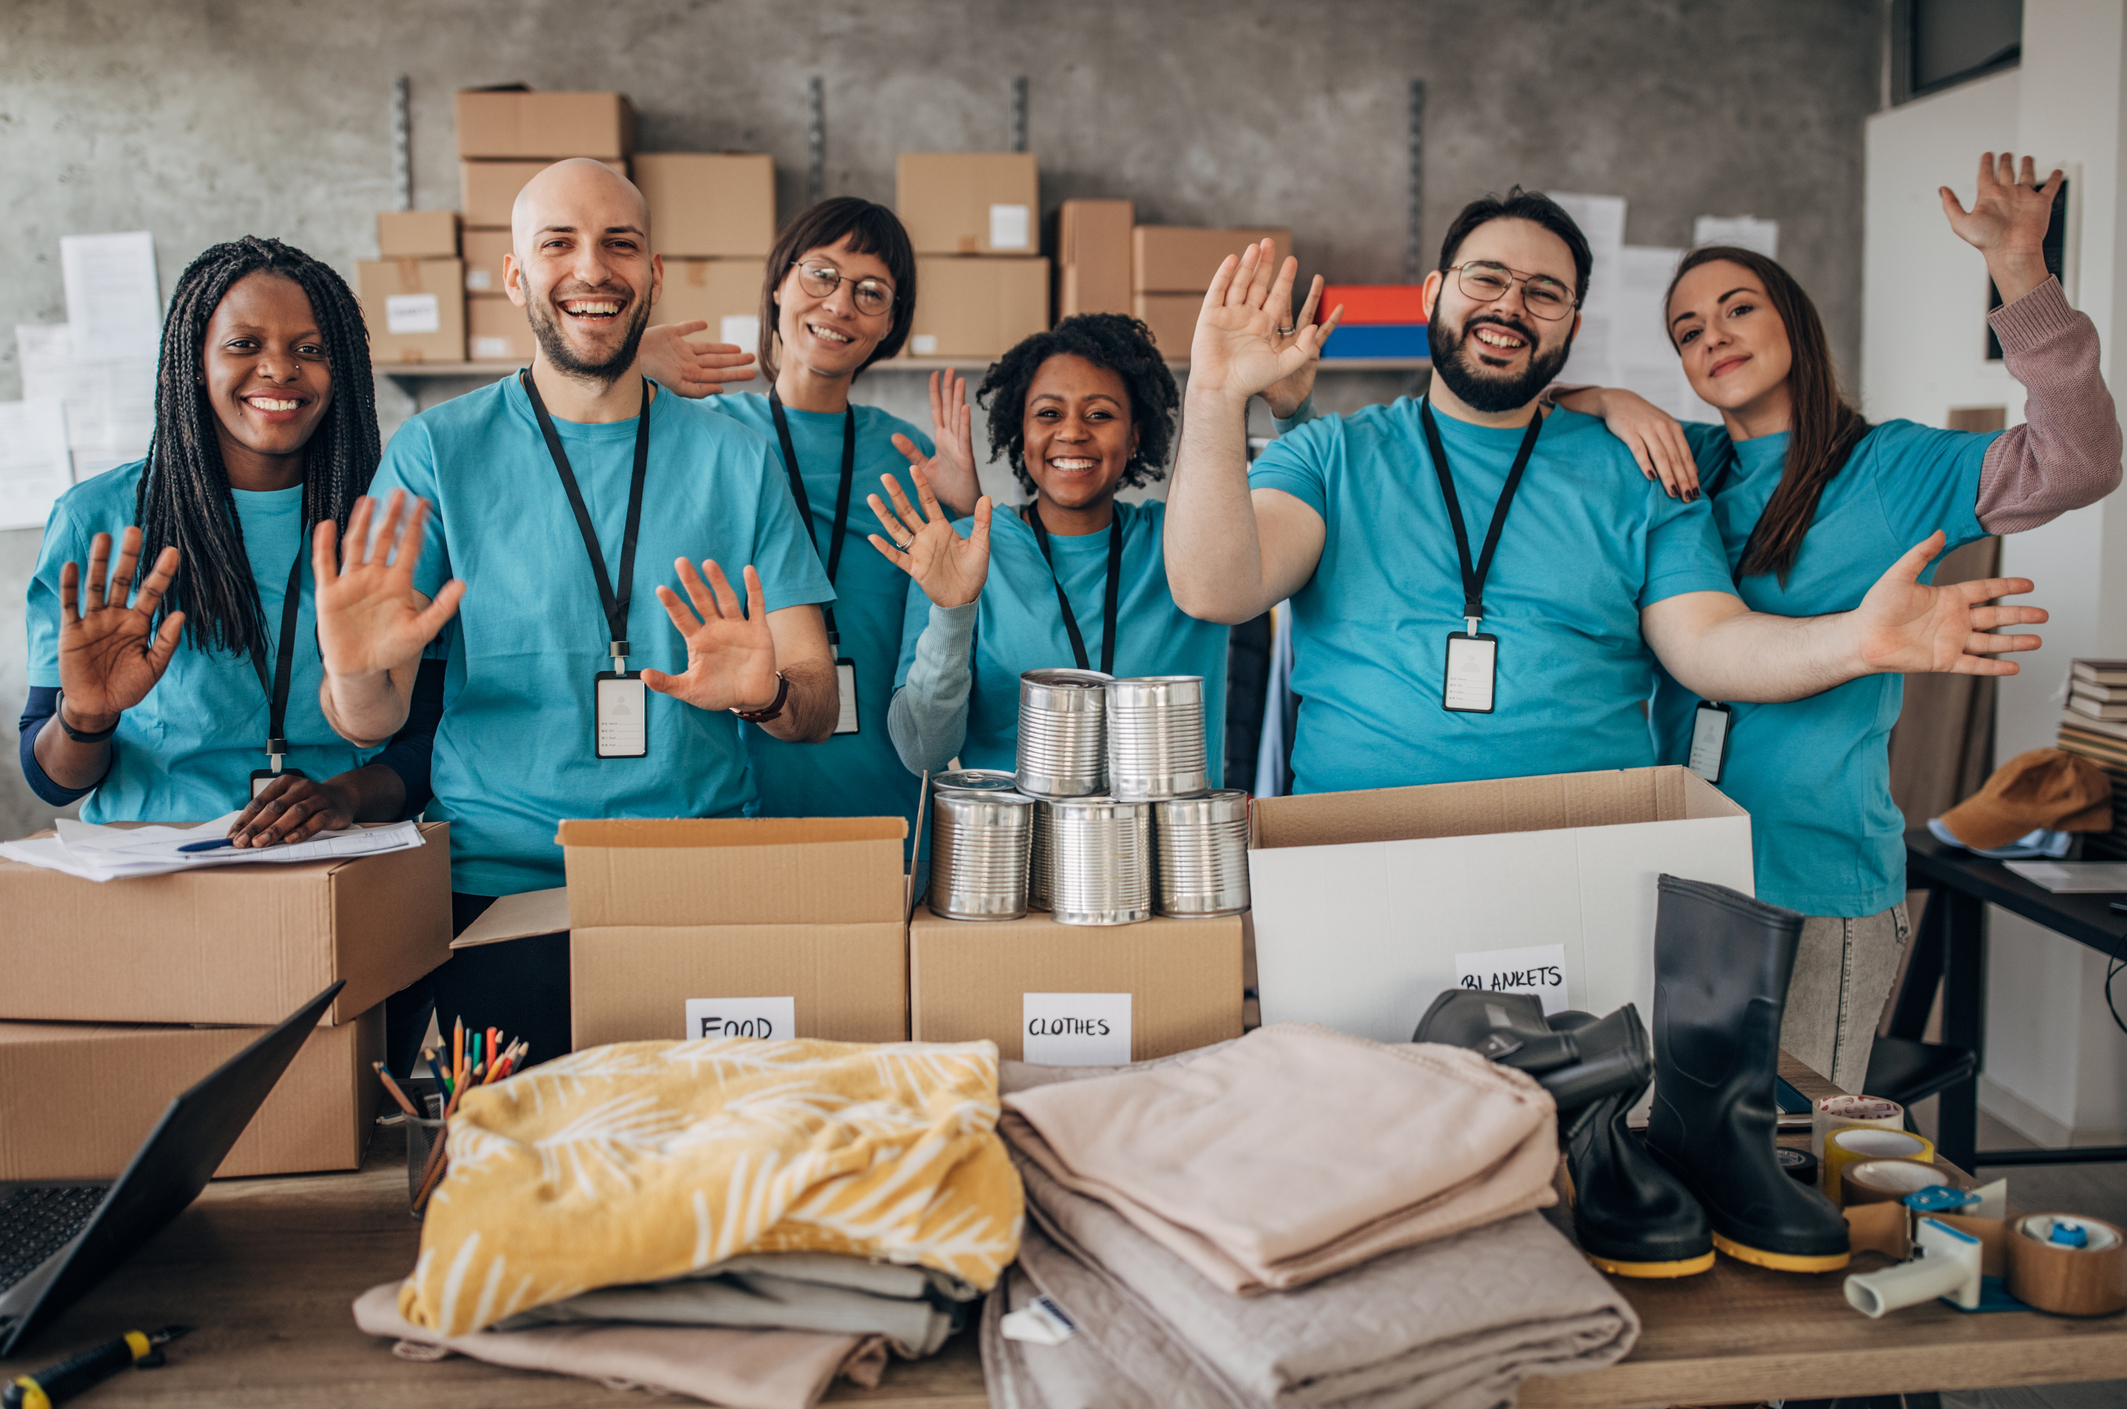 stock photo of six team members in the same t-shirts packing food boxes